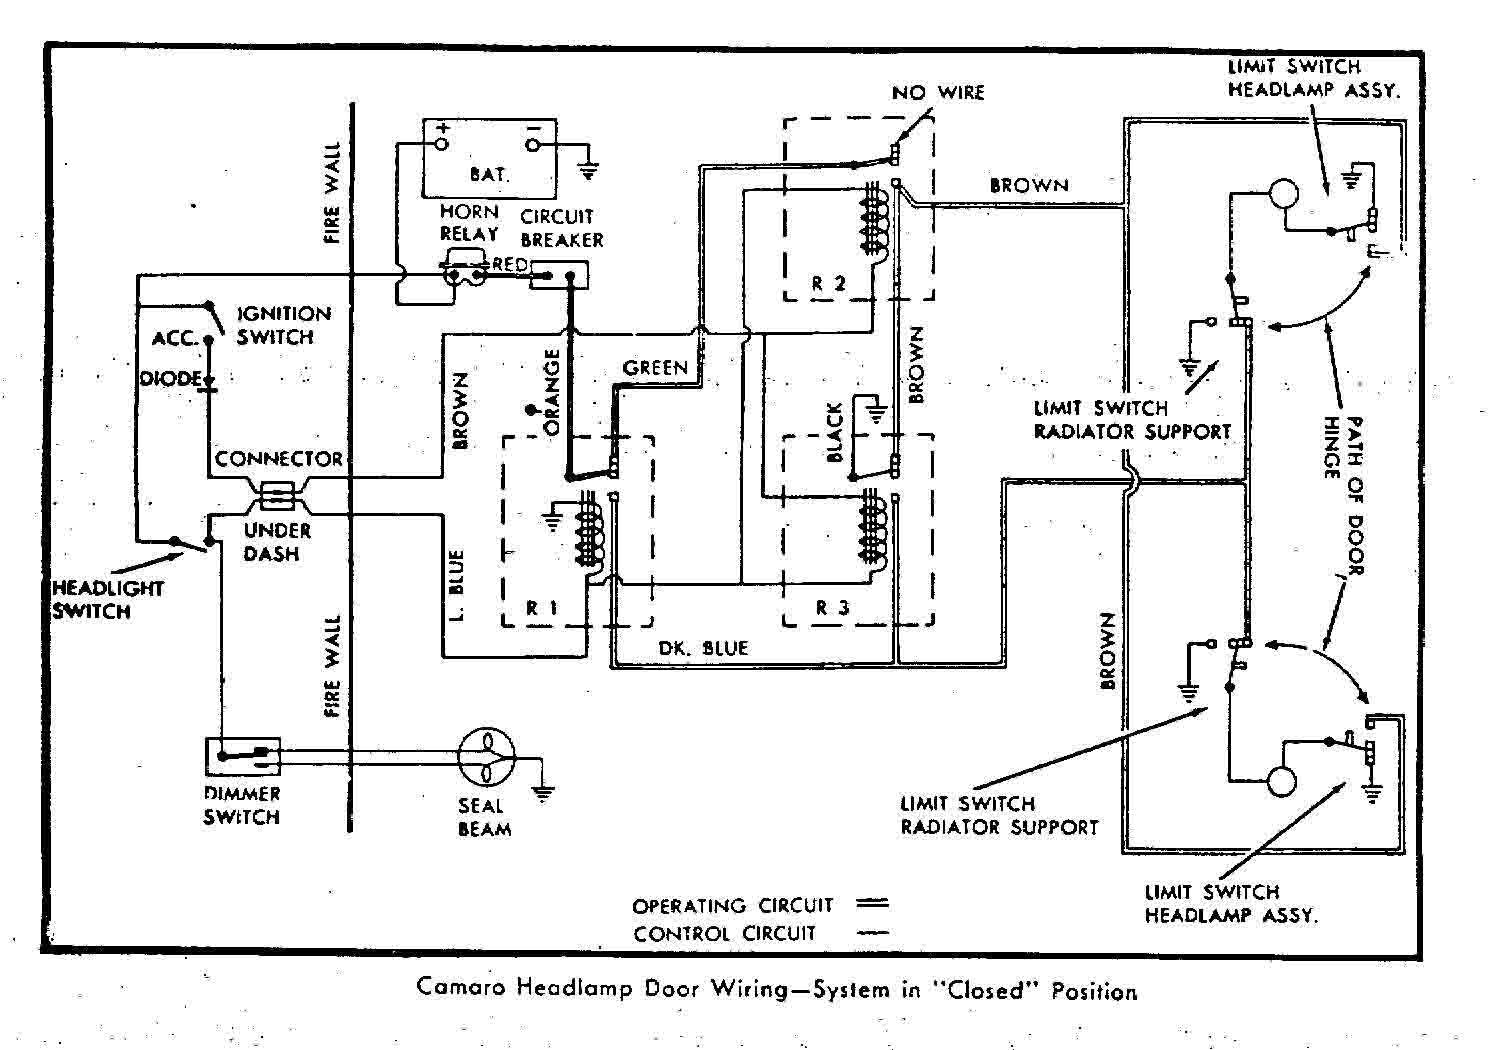 hight resolution of 67 camaro headlight wiring diagram wiring diagram article chevy truck wiring diagram 1969 camaro ss interior chevy truck wiring